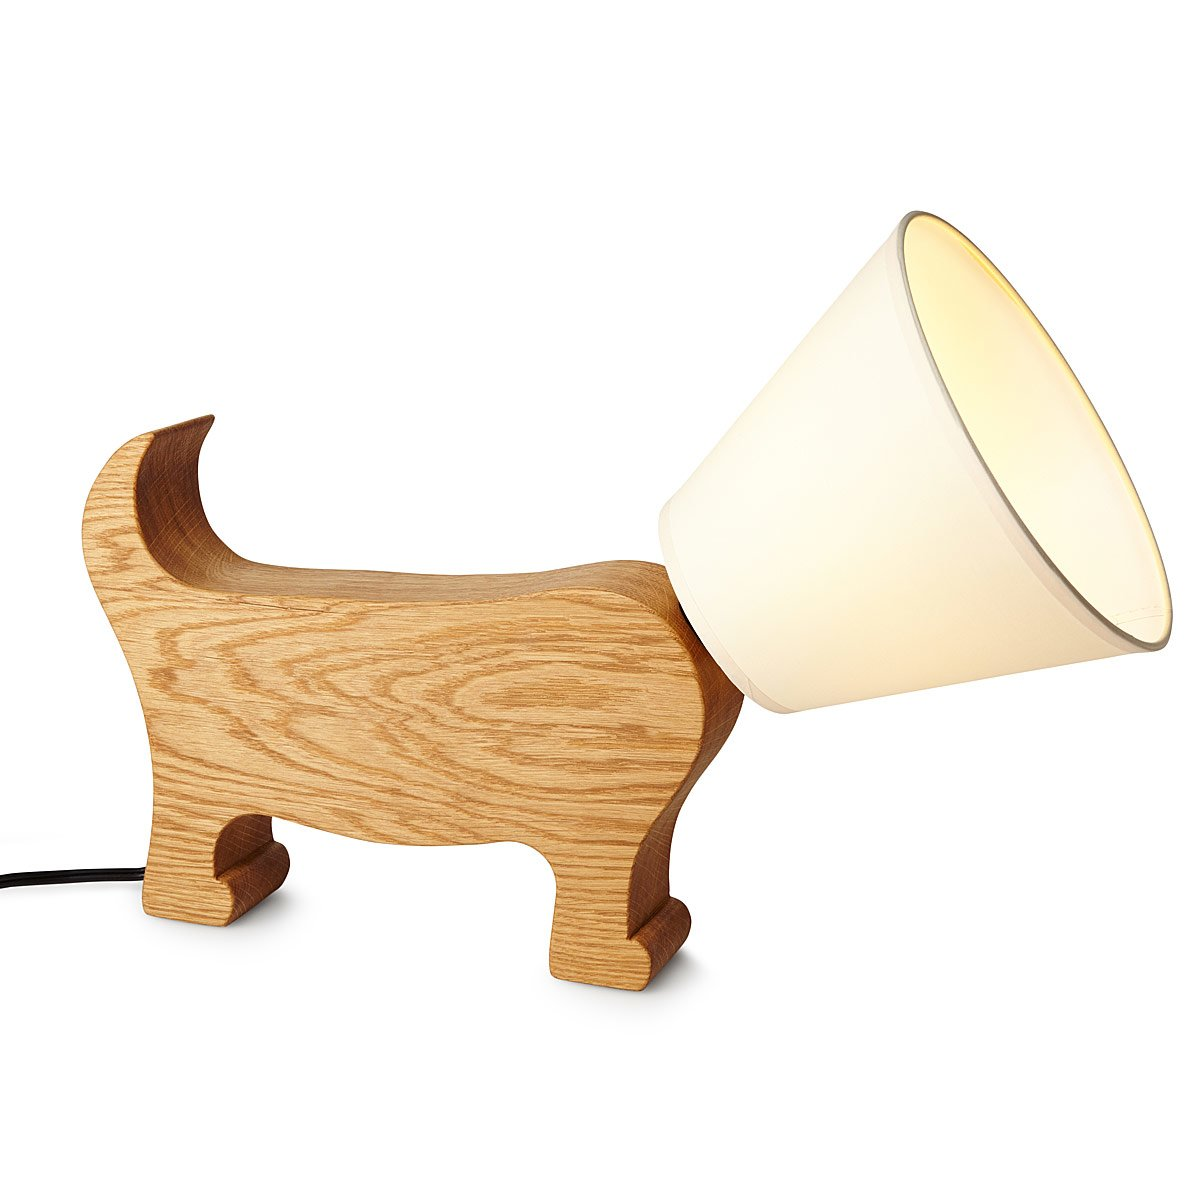 design luminose stand buy table lamp your exclusively shop dog wooden natur red here create